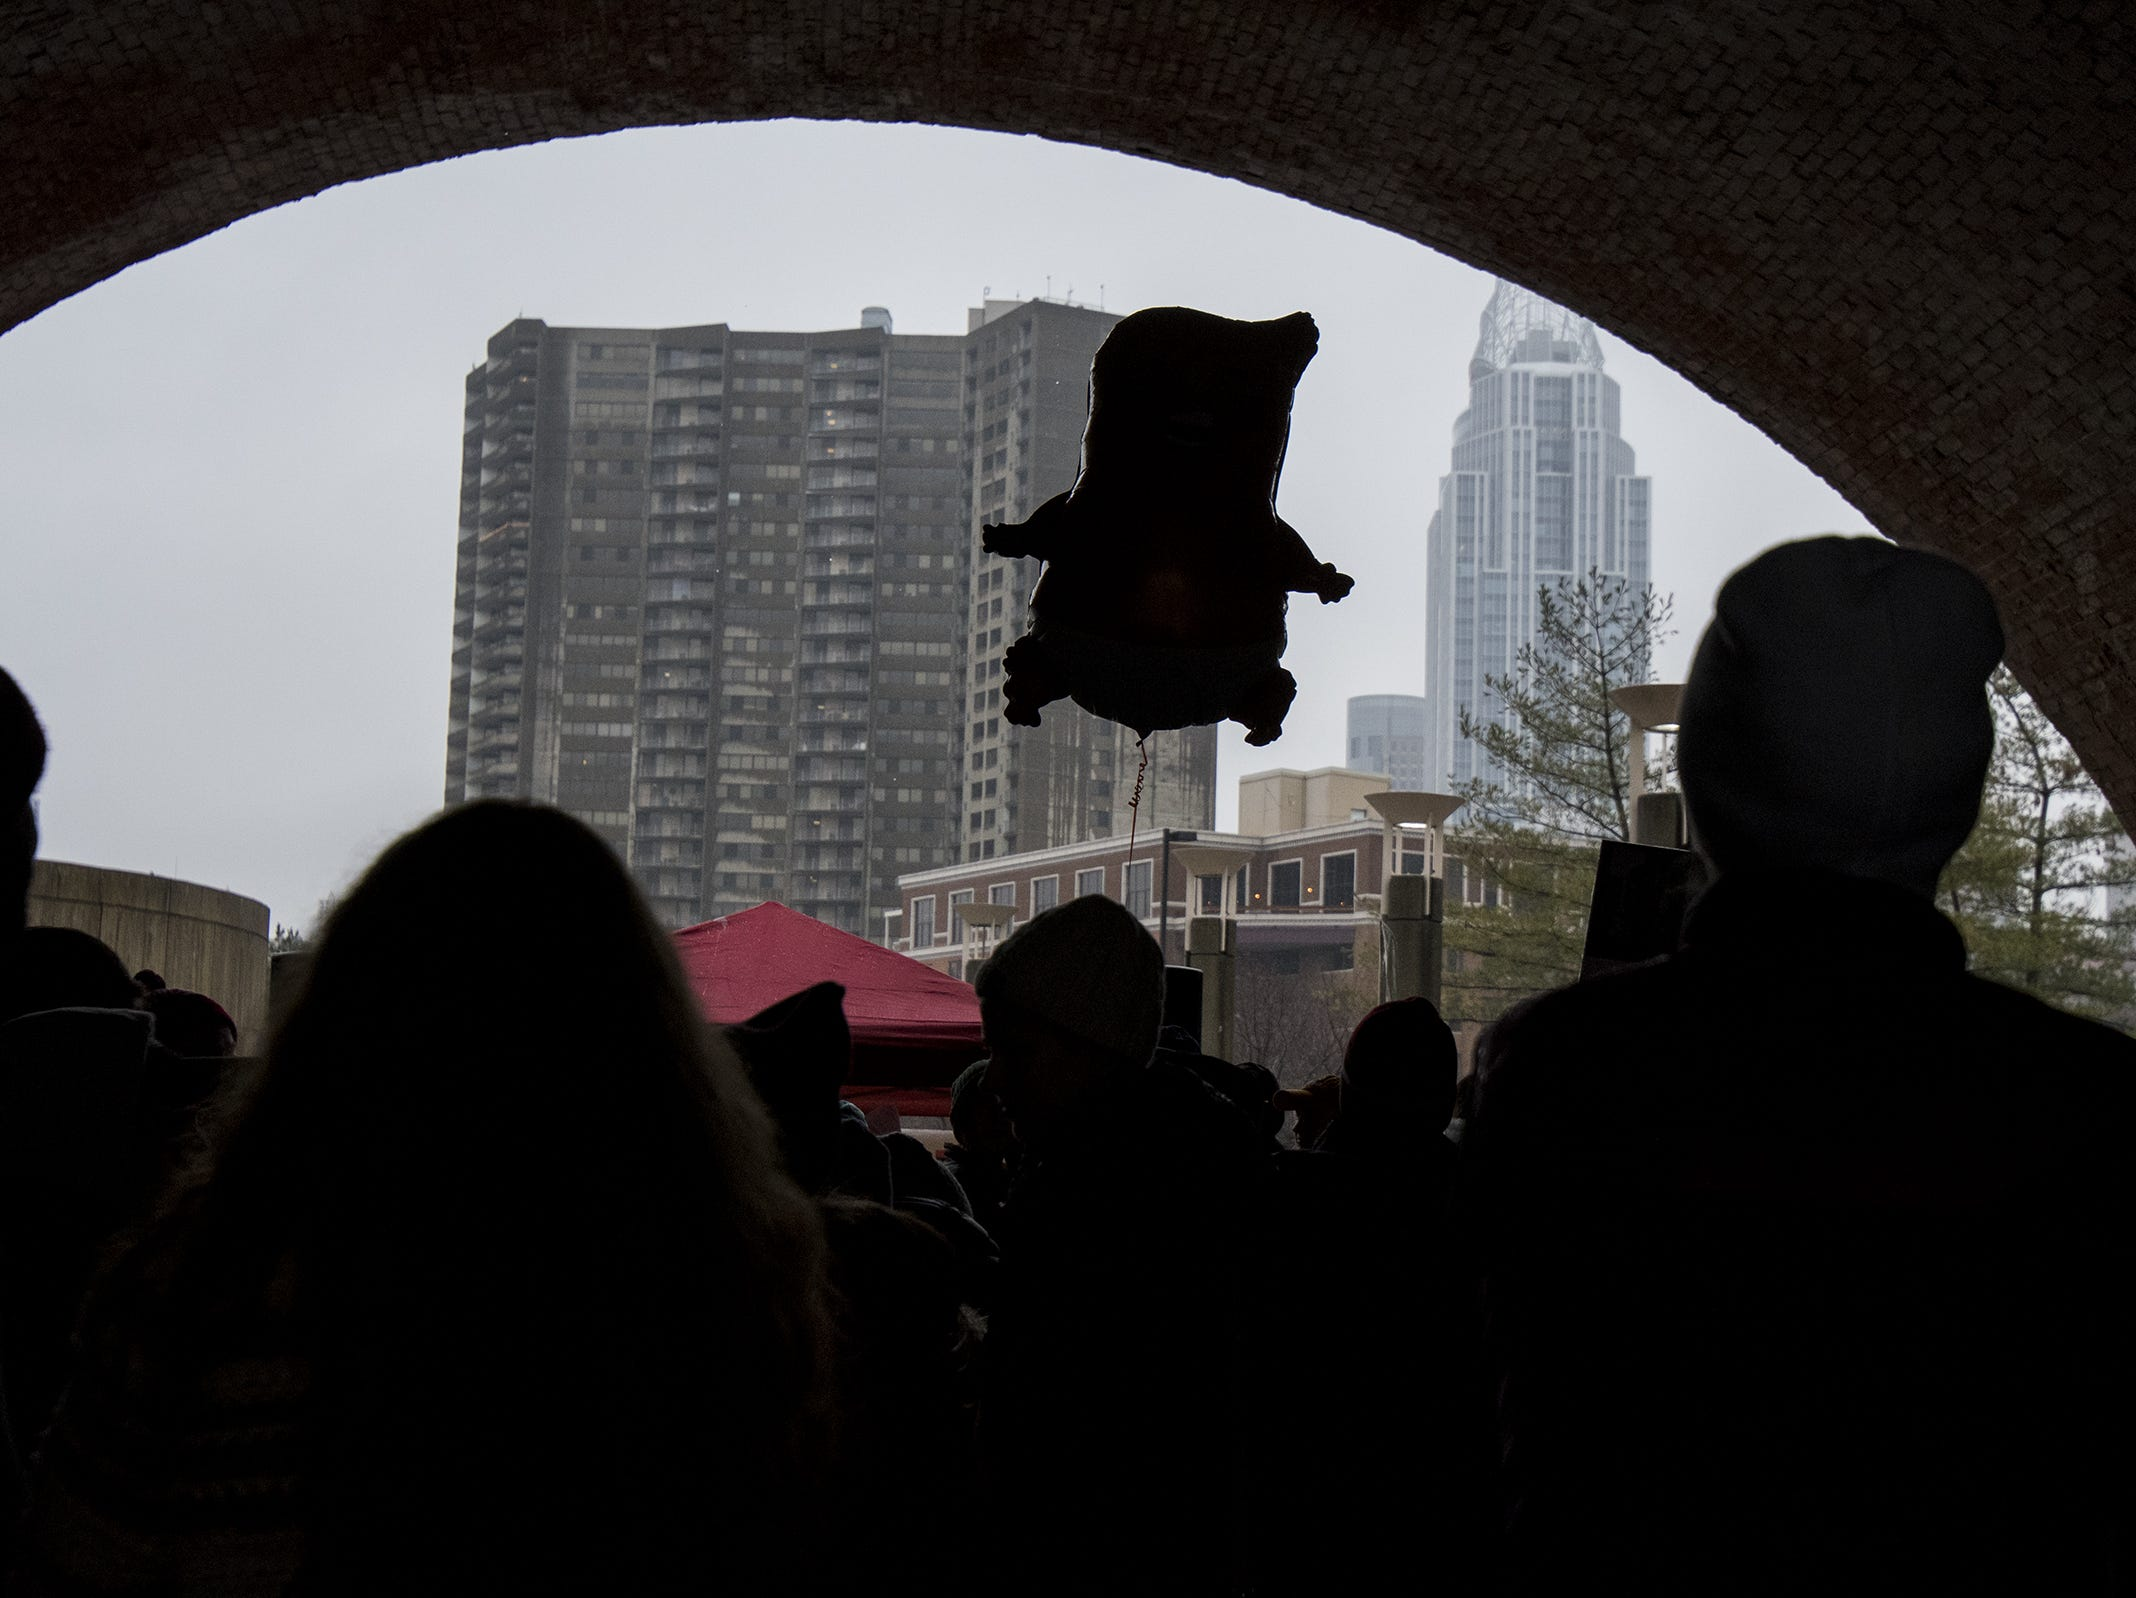 A Donald Trump-shaped balloon floats above demonstrators as they gather at Sawyer Point Park for the 2019 Women's March organized by the Cincinnati chapters of Socialist Alternative, Democratic Socialists of America and the International Socialist Organization Saturday, January 19, 2019 in Cincinnati, Ohio.